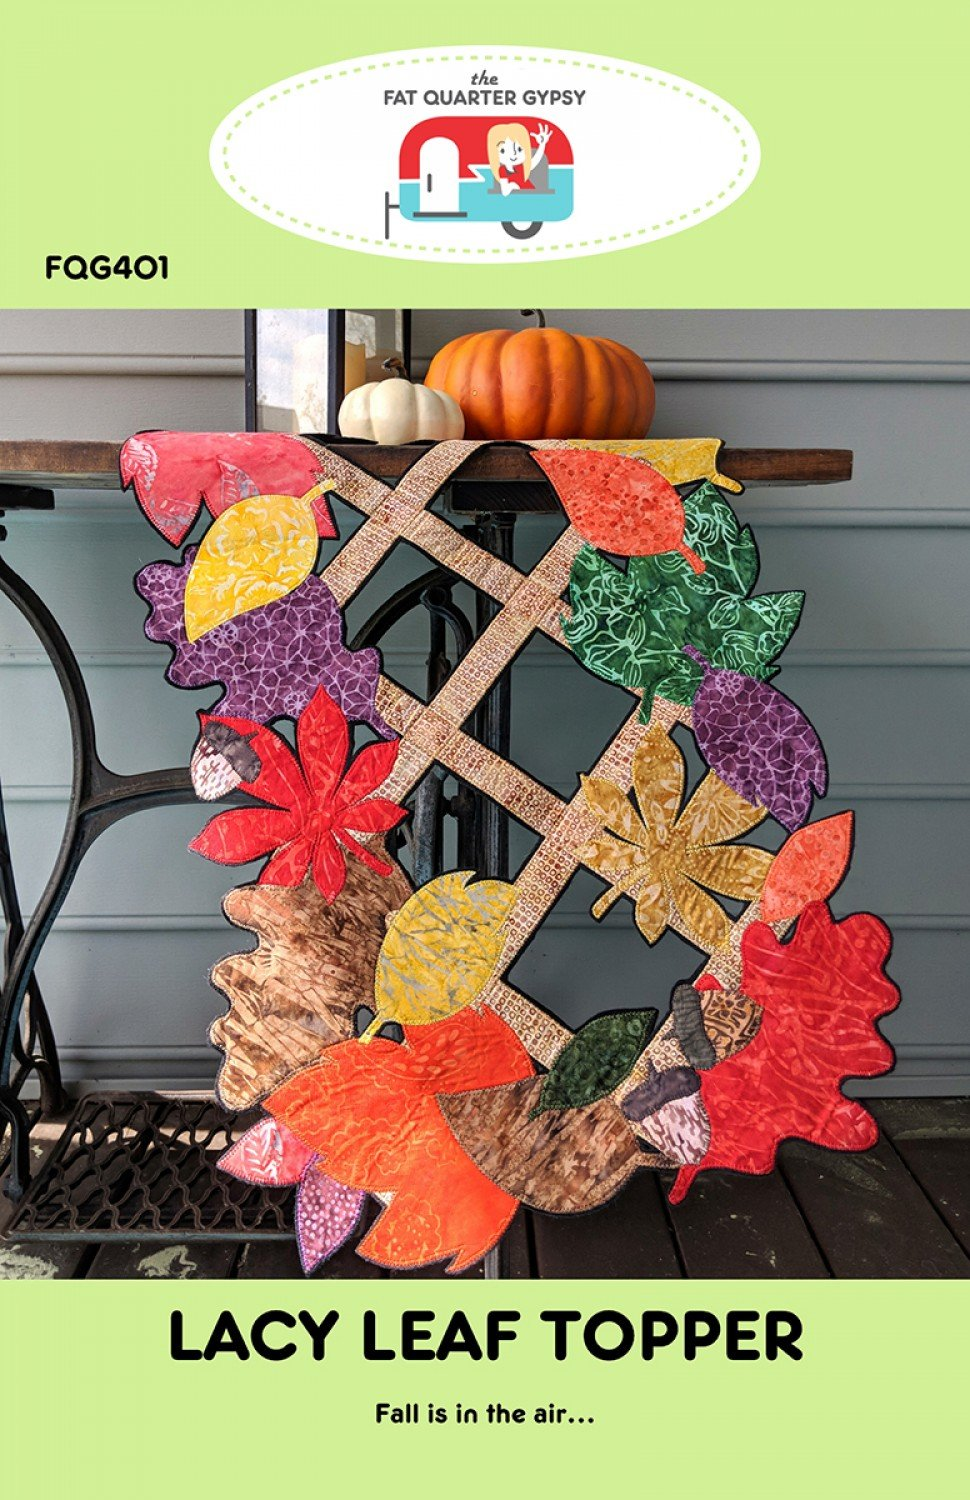 Lacy Leaf Topper